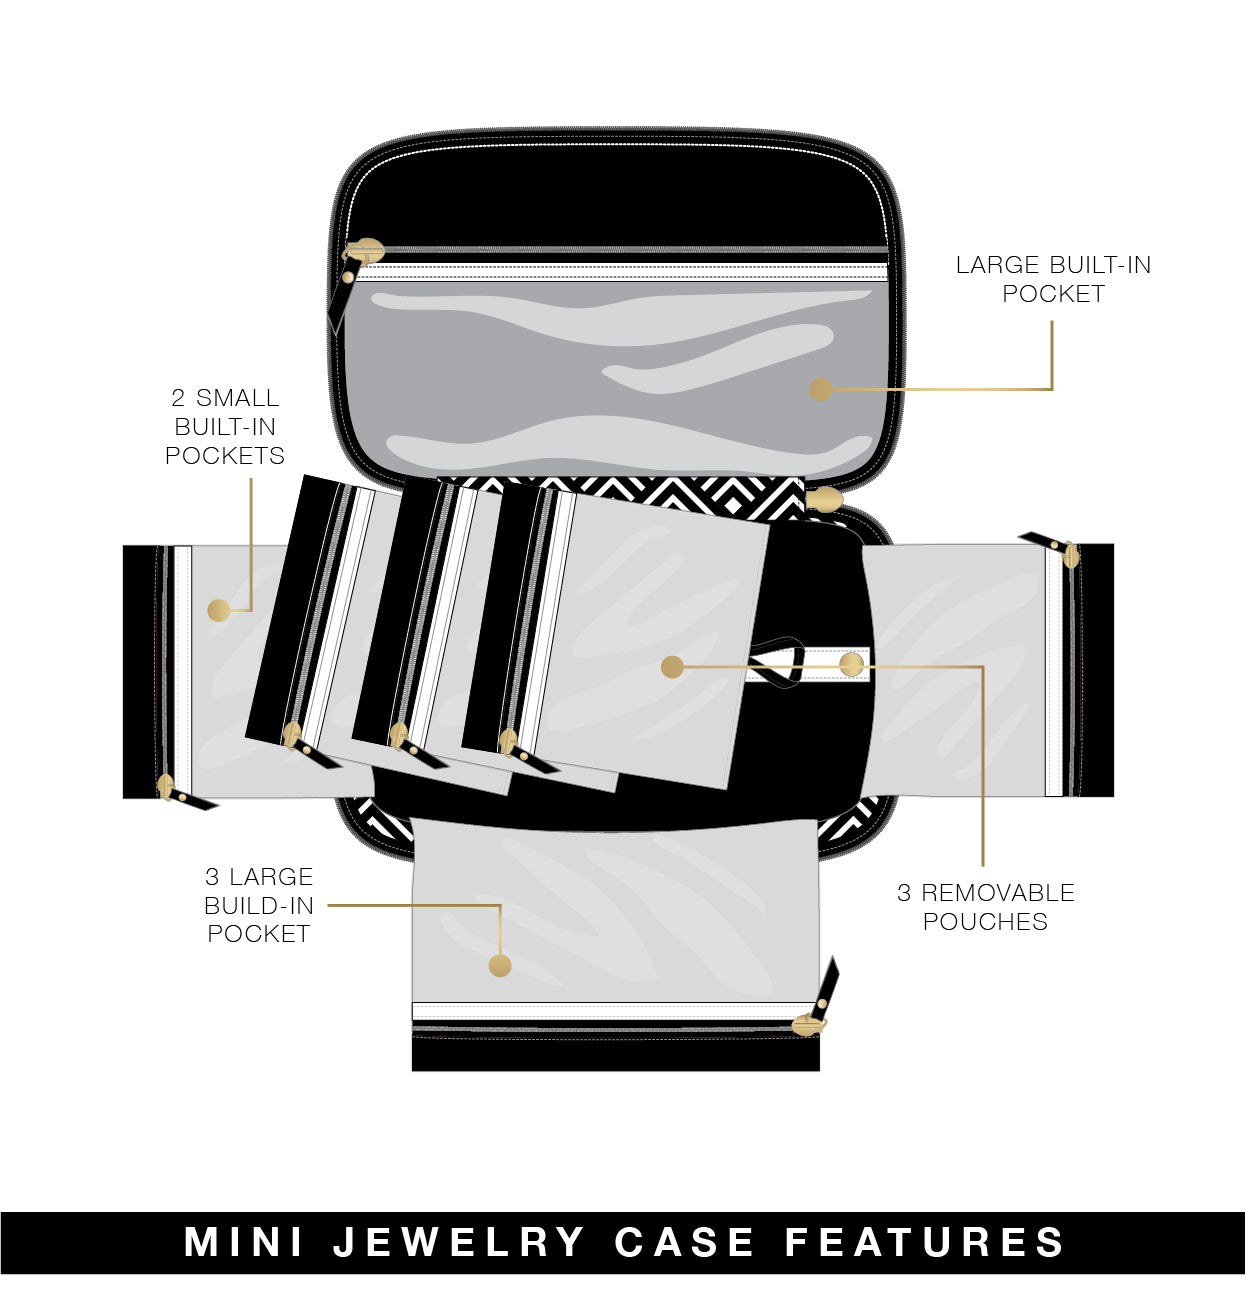 Tiara Mini Jewelry Case - Timeless Quilted